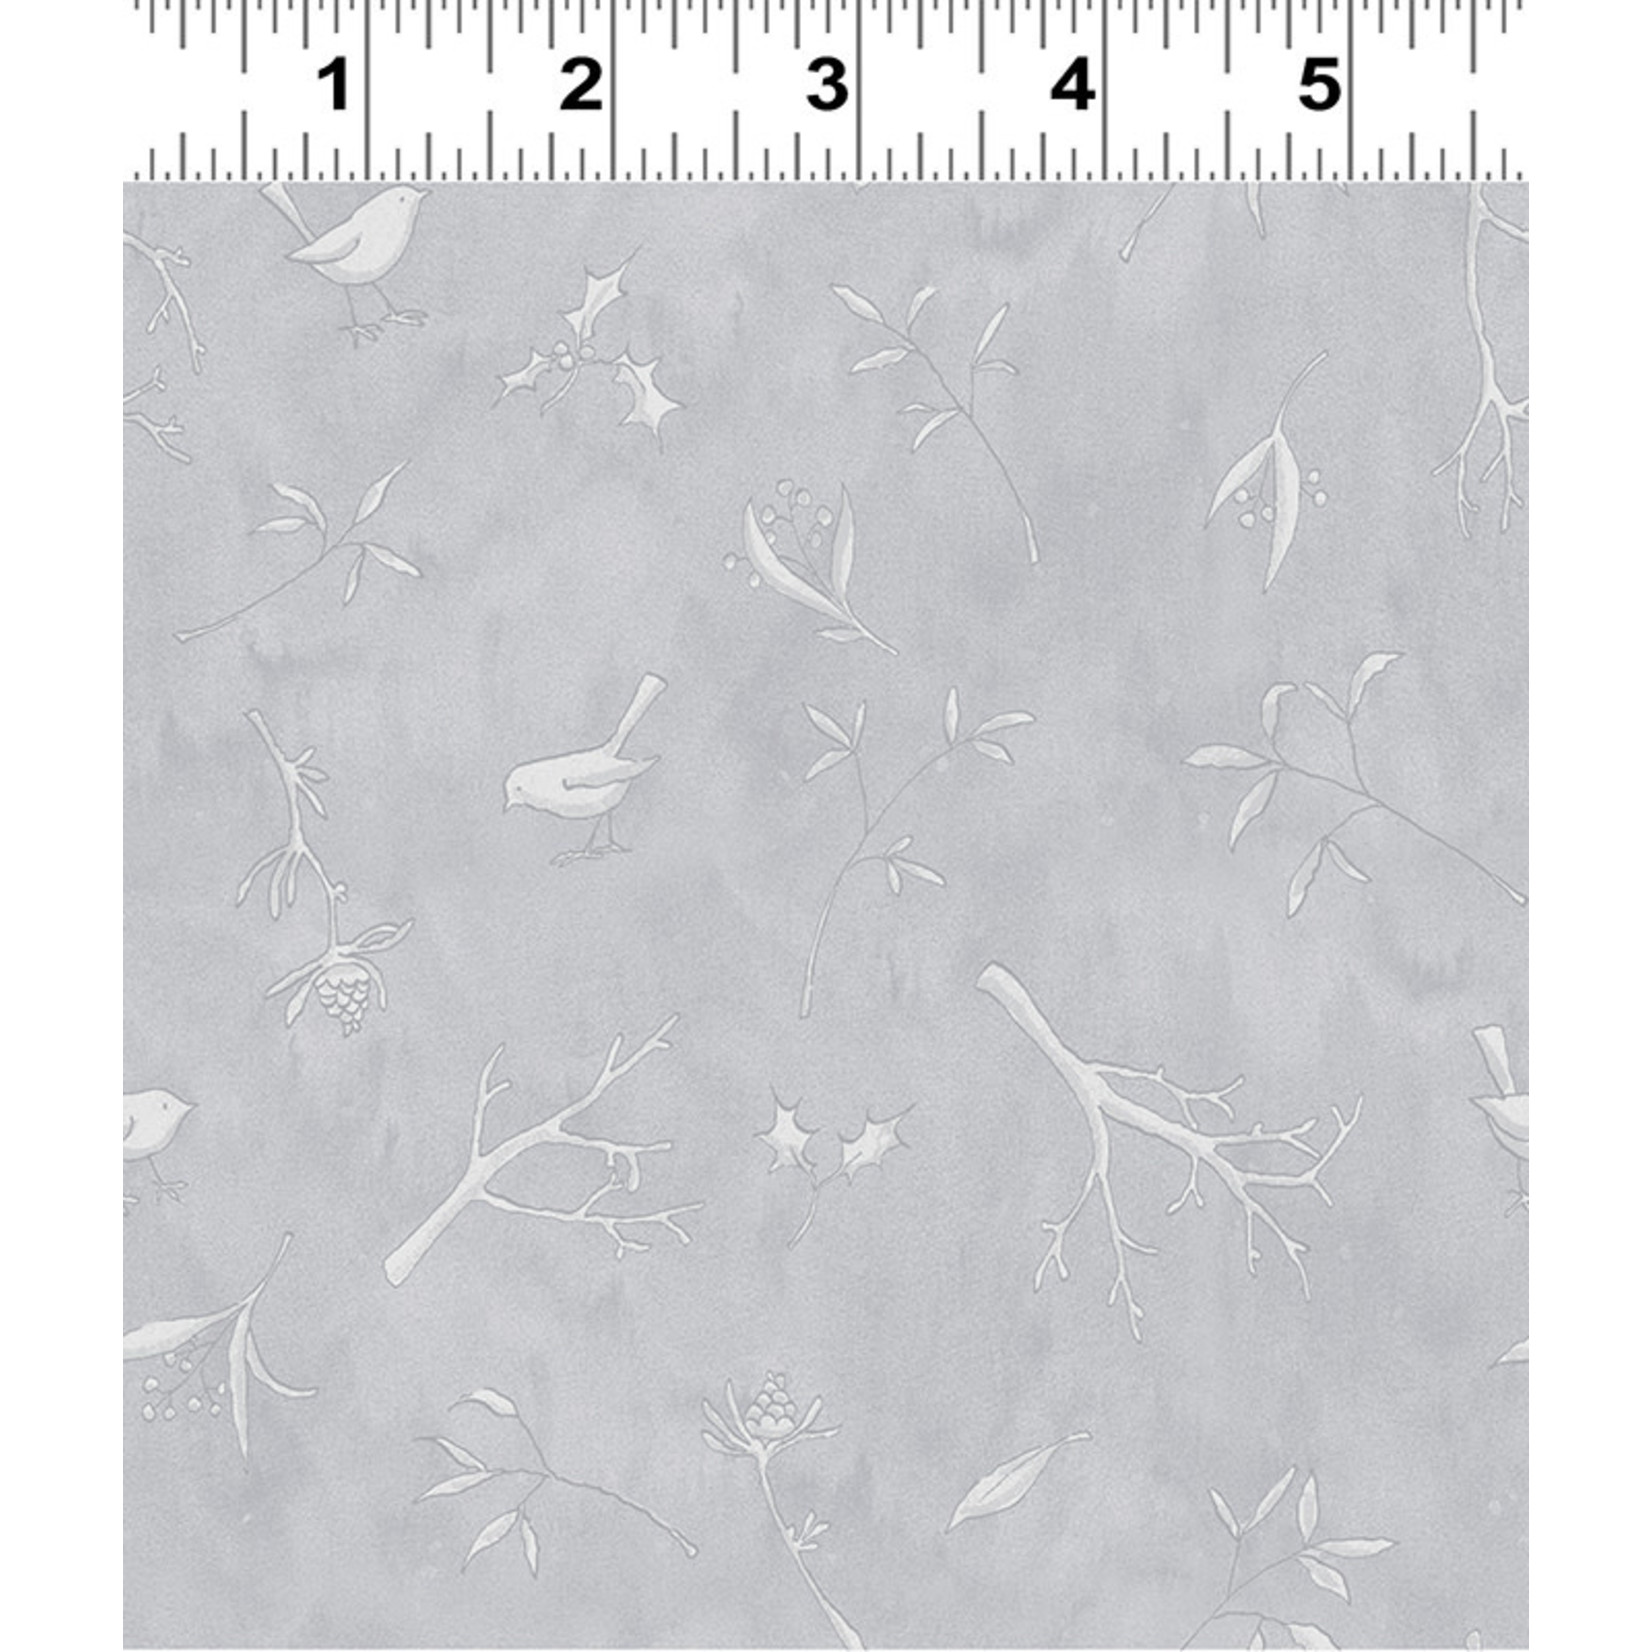 Clothworks Guess How Much I Love You, Sprigs, Grey (Y3083-119) per cm or $20/m